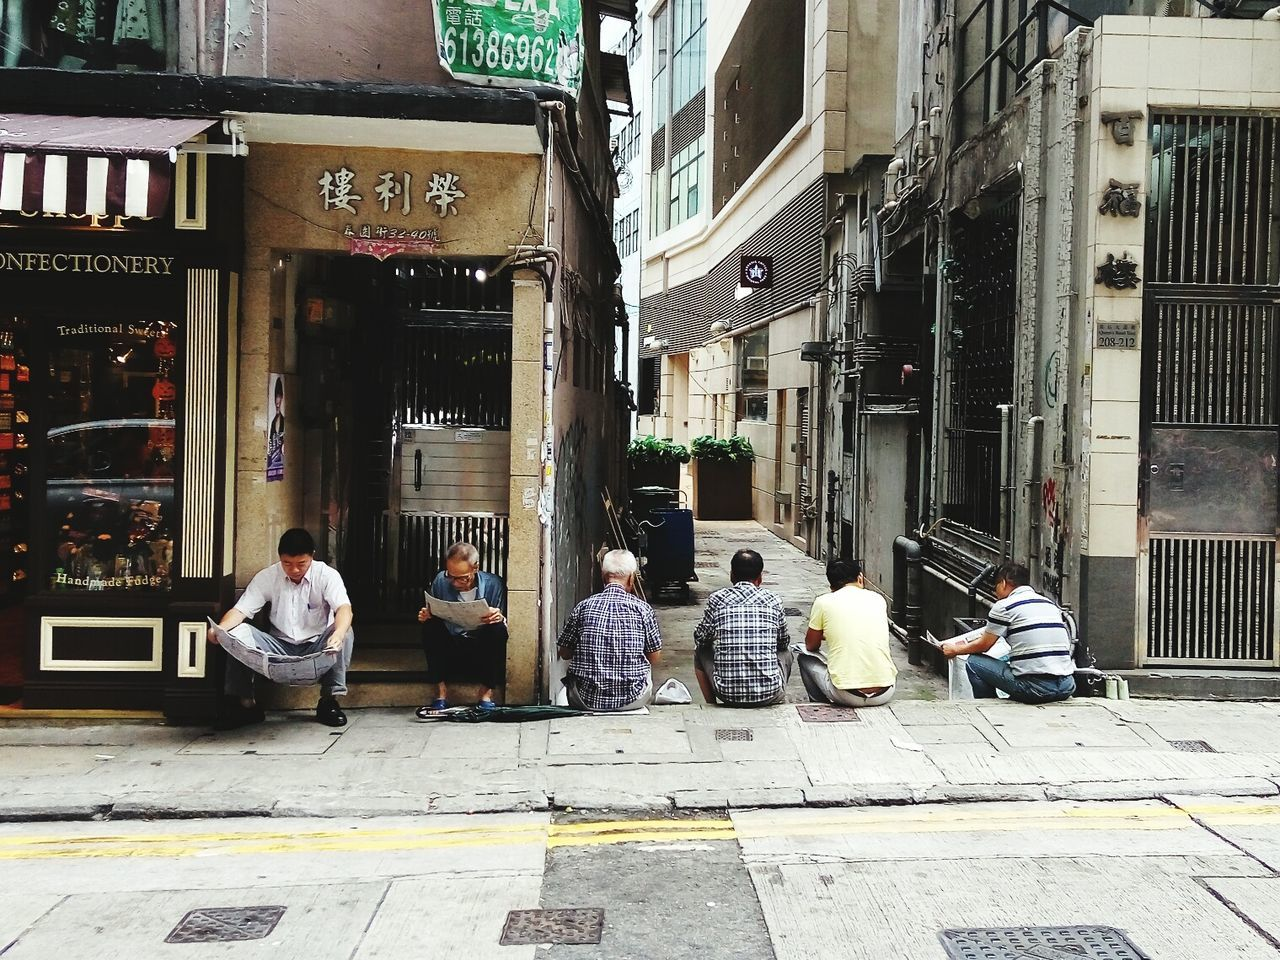 building exterior, architecture, built structure, real people, men, outdoors, day, women, sidewalk, street, city, sitting, large group of people, people